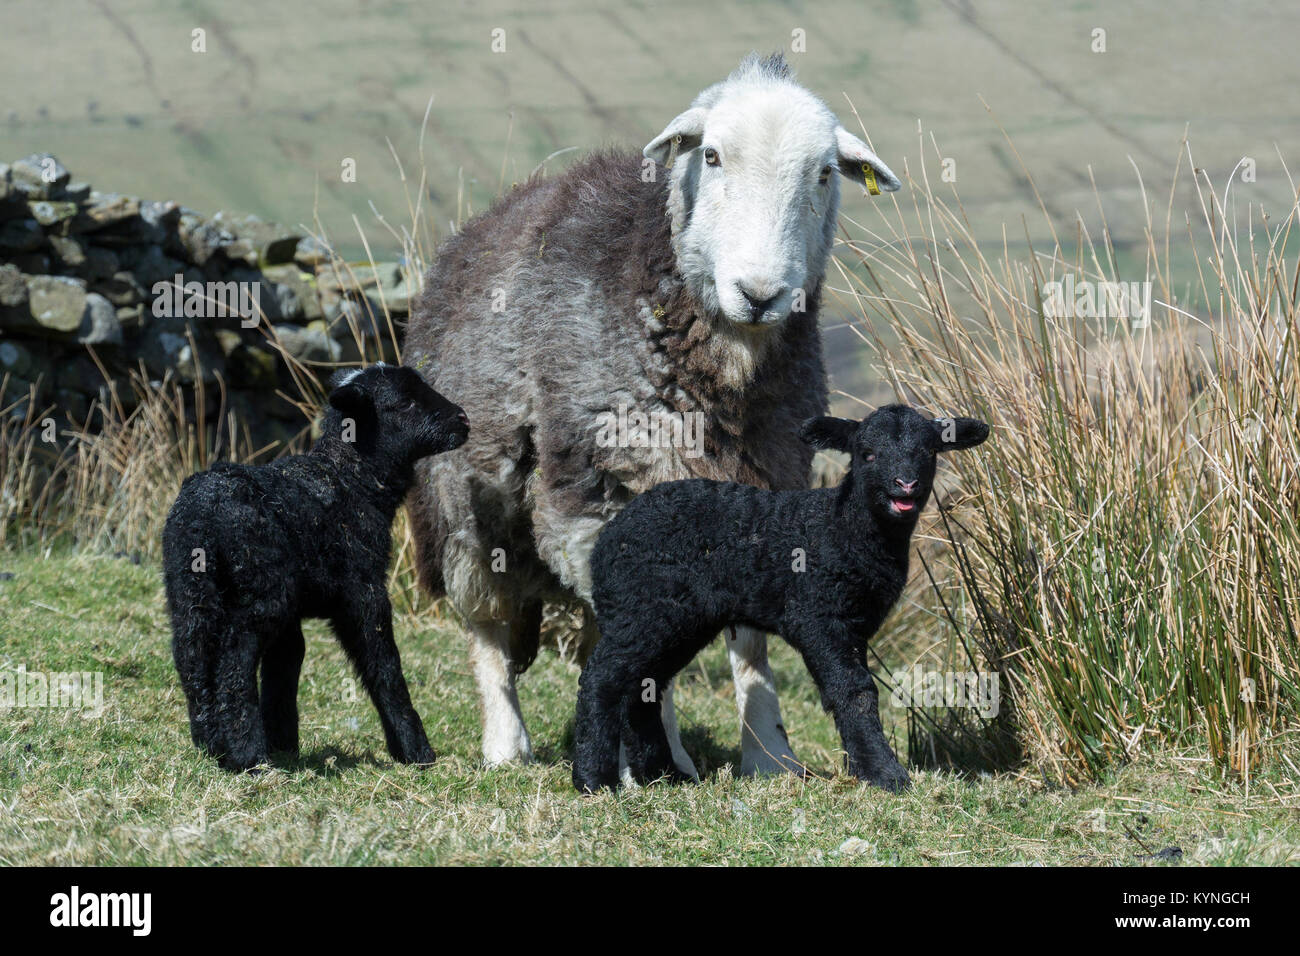 Herdwick ewe with newborn lamb in upland pasture, UK. - Stock Image